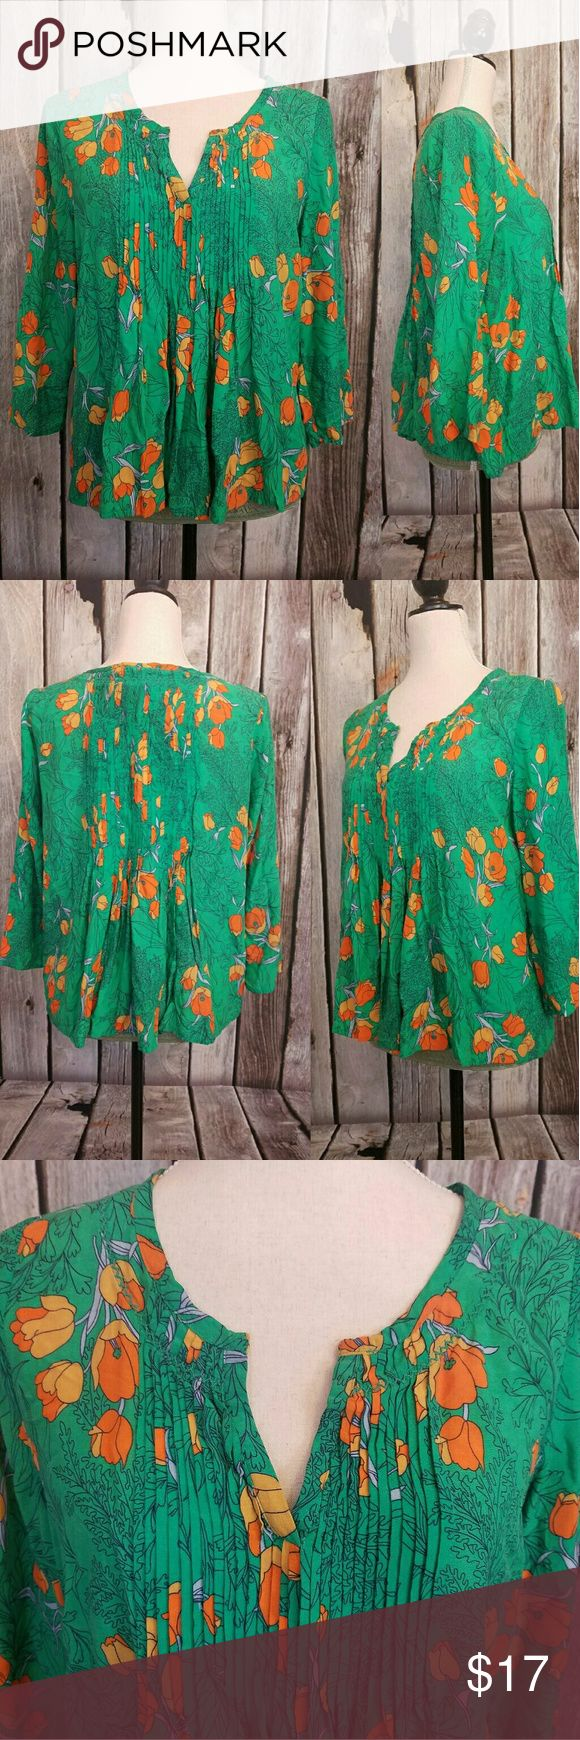 Anthropologie Vanessa Virginia medium pheasant top For sale is a Vanessa Virginia top from Anthropologie, size 6. The top is a pheasant style top with a floral print and pleating. It is an excellent used condition with no rips or stains. All measurements are taken on one side of the item with the item laying flat. Chest 20 inches, hip 26 inches, length 22 inches. Thanks for looking feel free to make an offer or a bundle. Items ship within 1 business day Anthropologie Tops Blouses